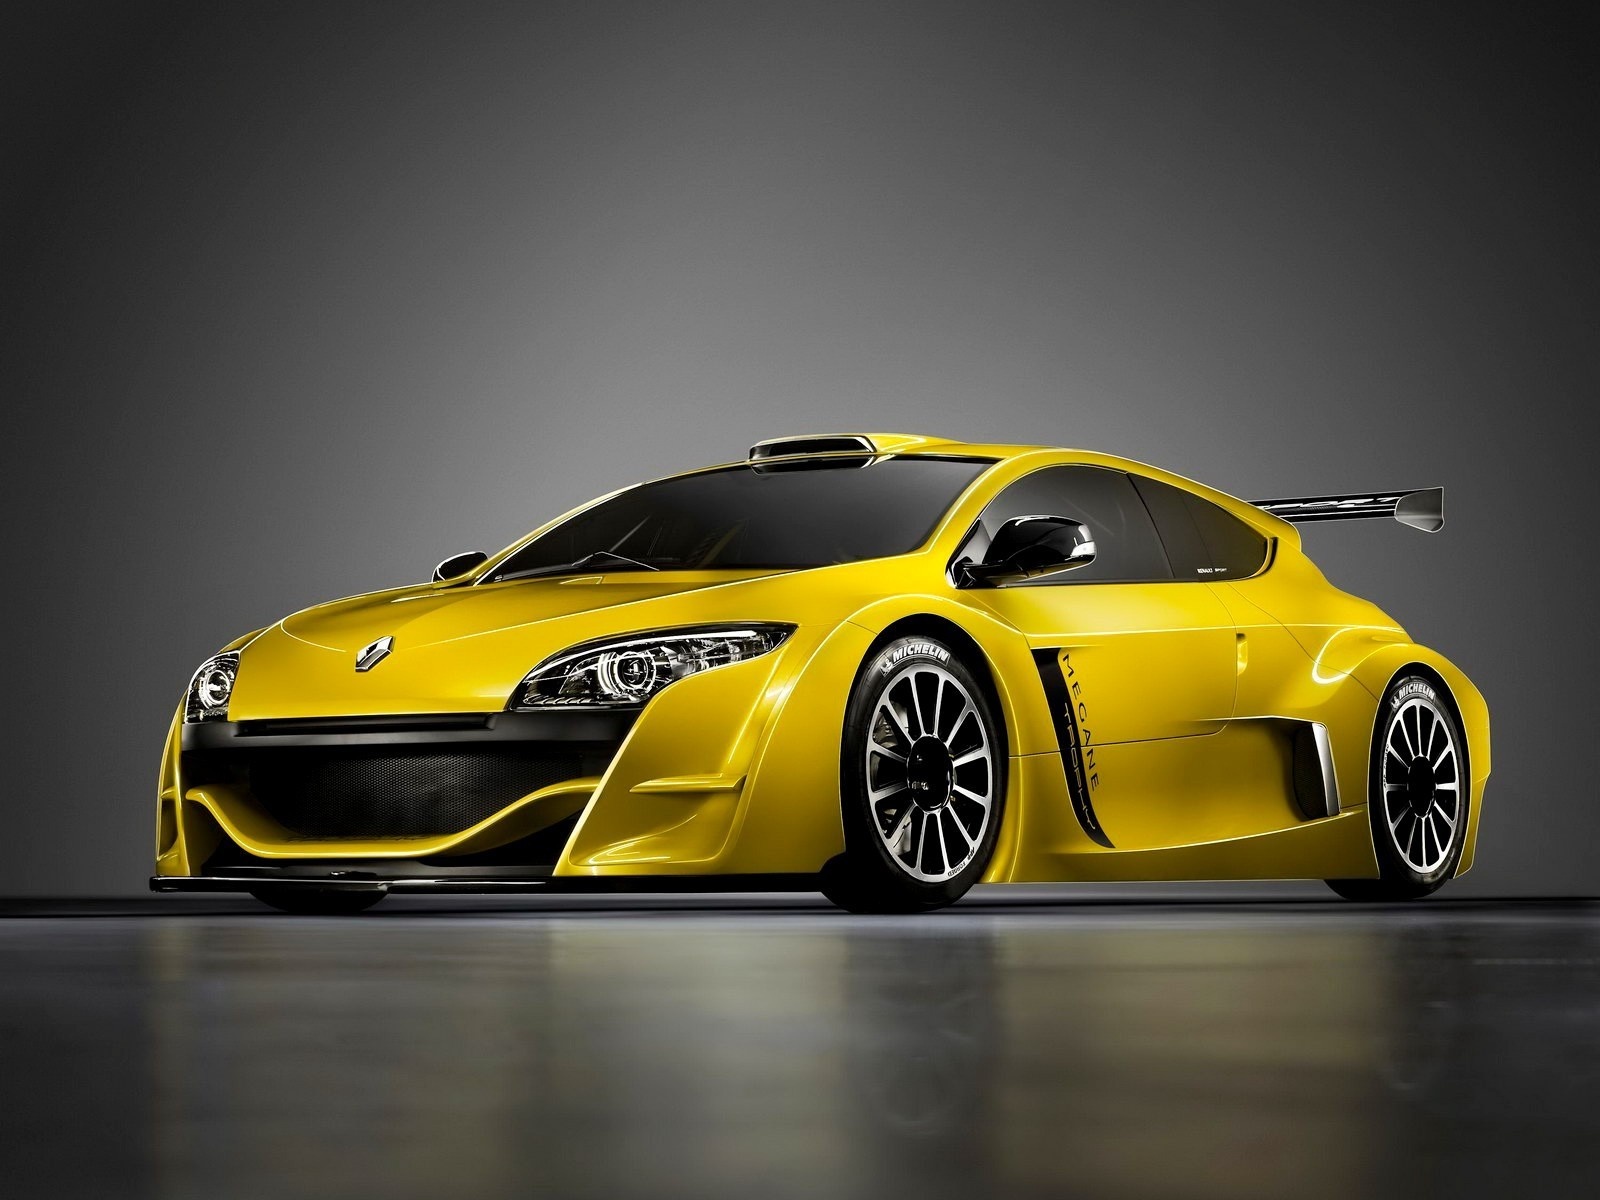 cars Supercars Renault HD Wallpaper